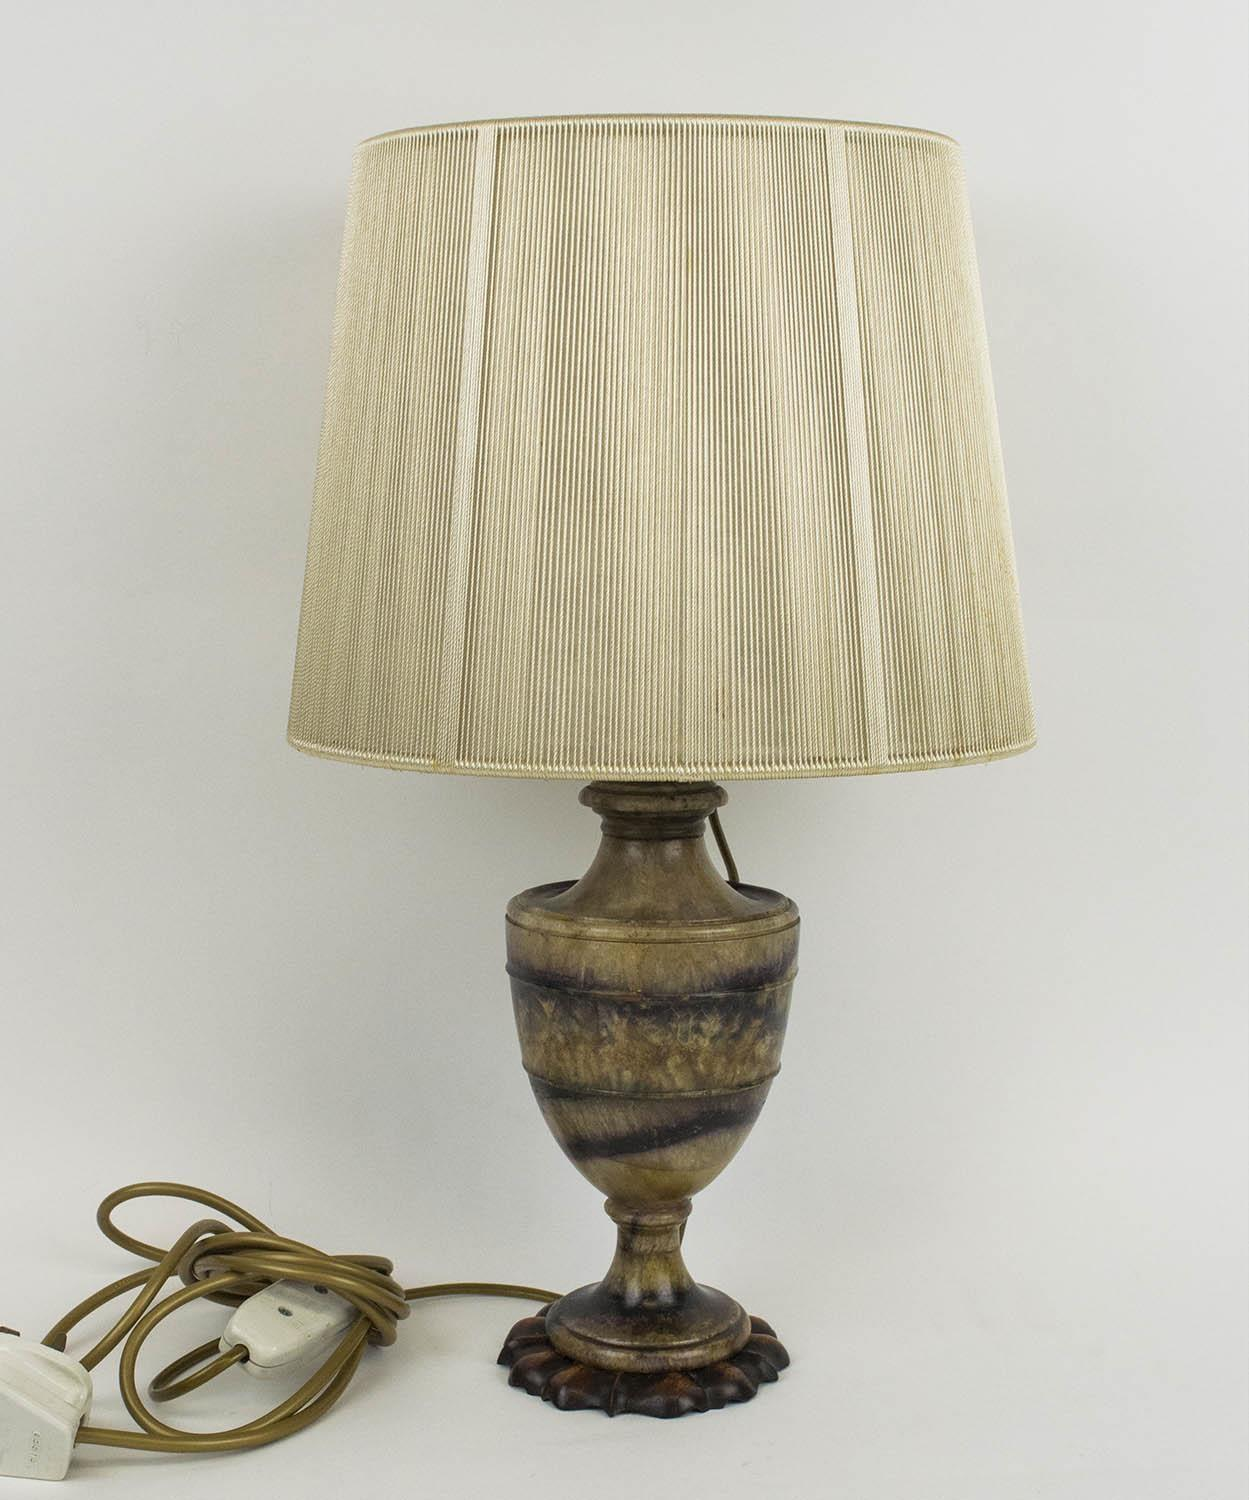 BLUE JOHN URN, late 18th century converted to a lamp, the fluorite Derbyshire spar with familiar